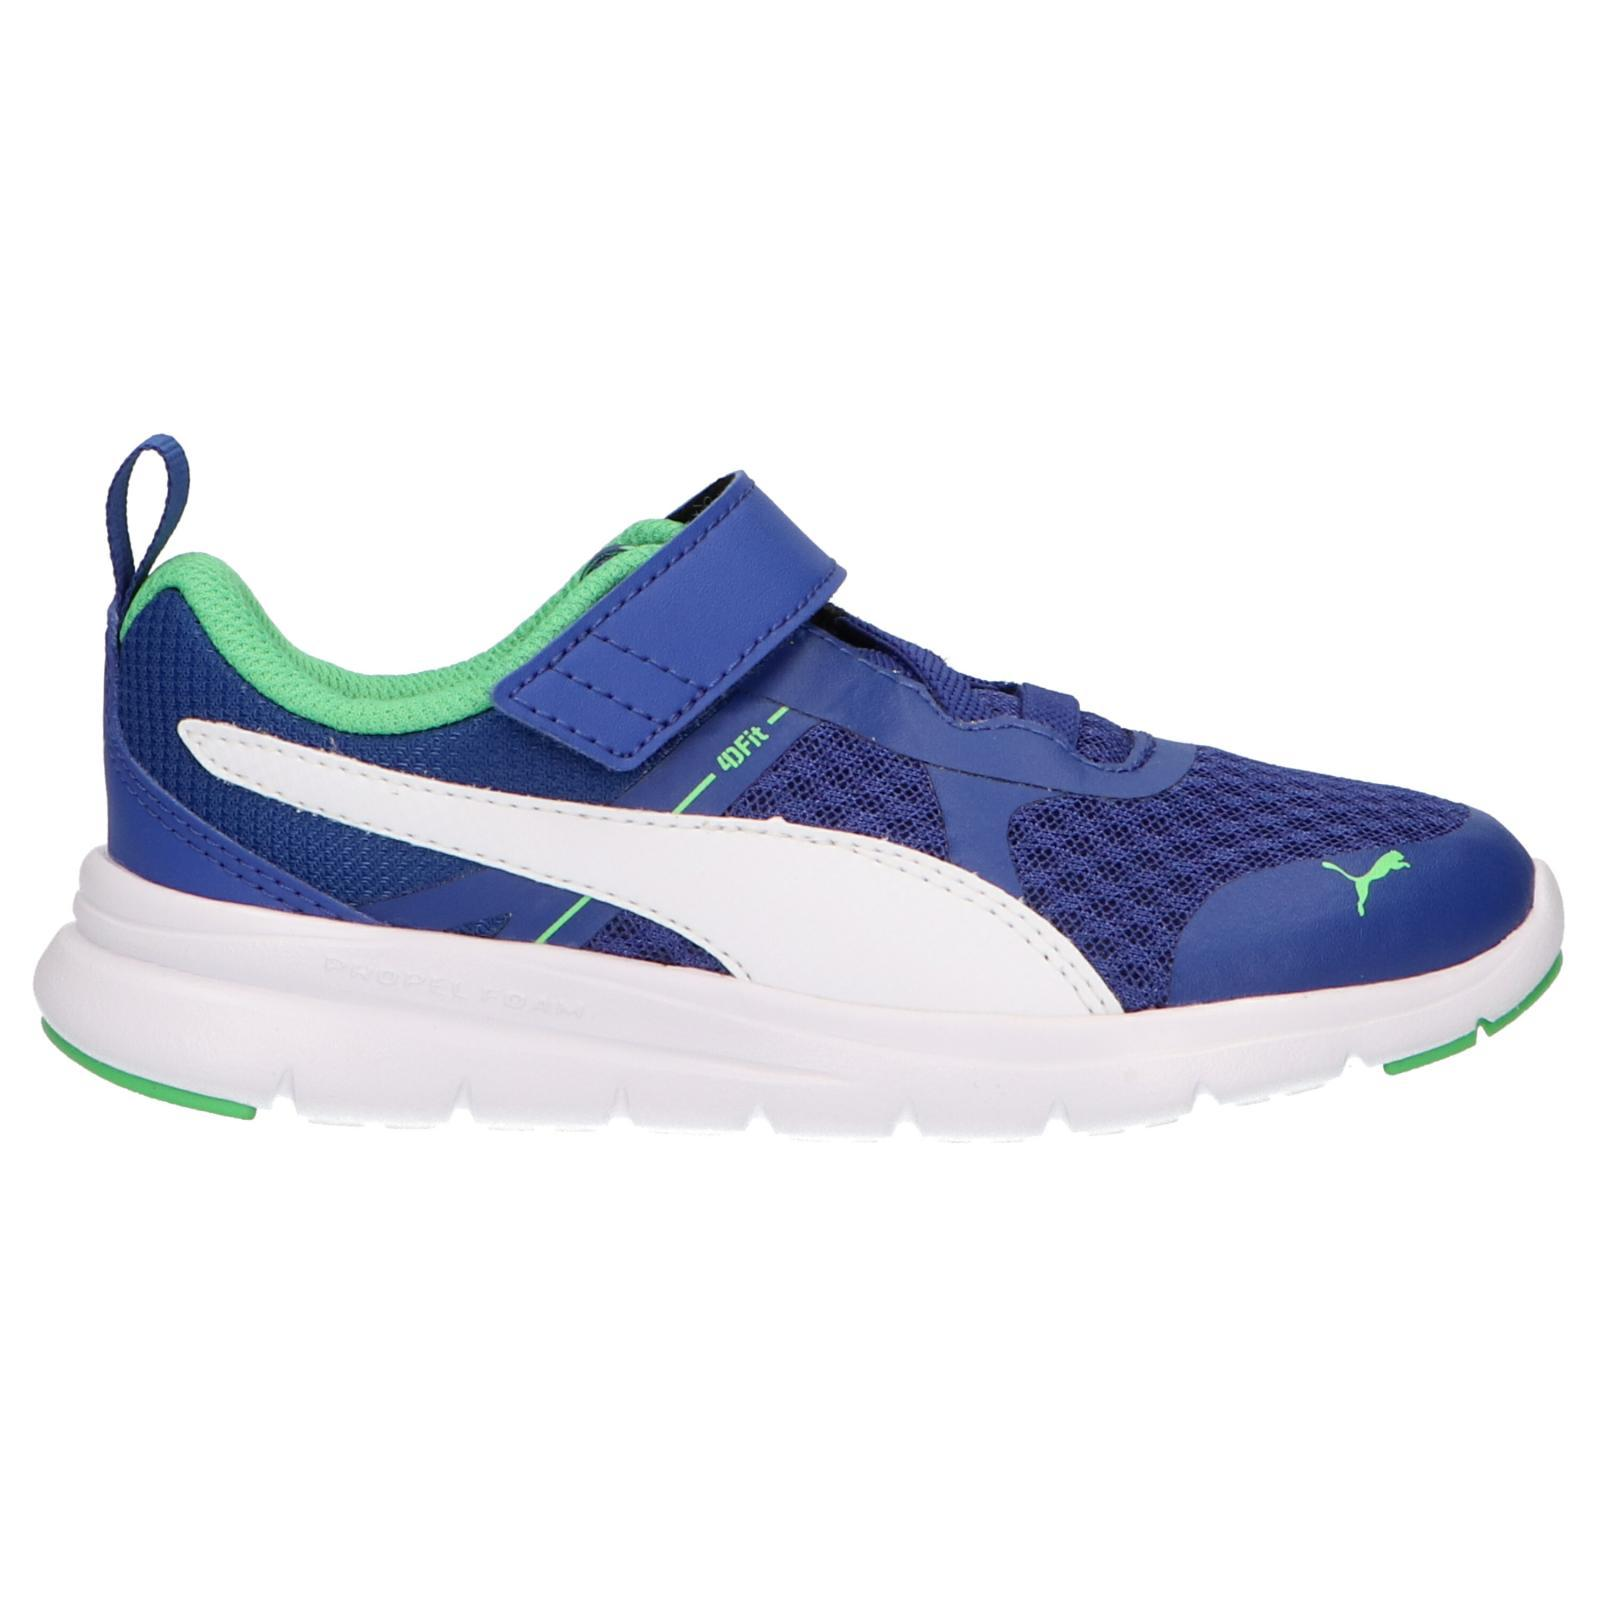 Zapatillas deporte PUMA  de Niño y Niña 190683 FLEX ESSENTIAL 10 SURF THE WEB